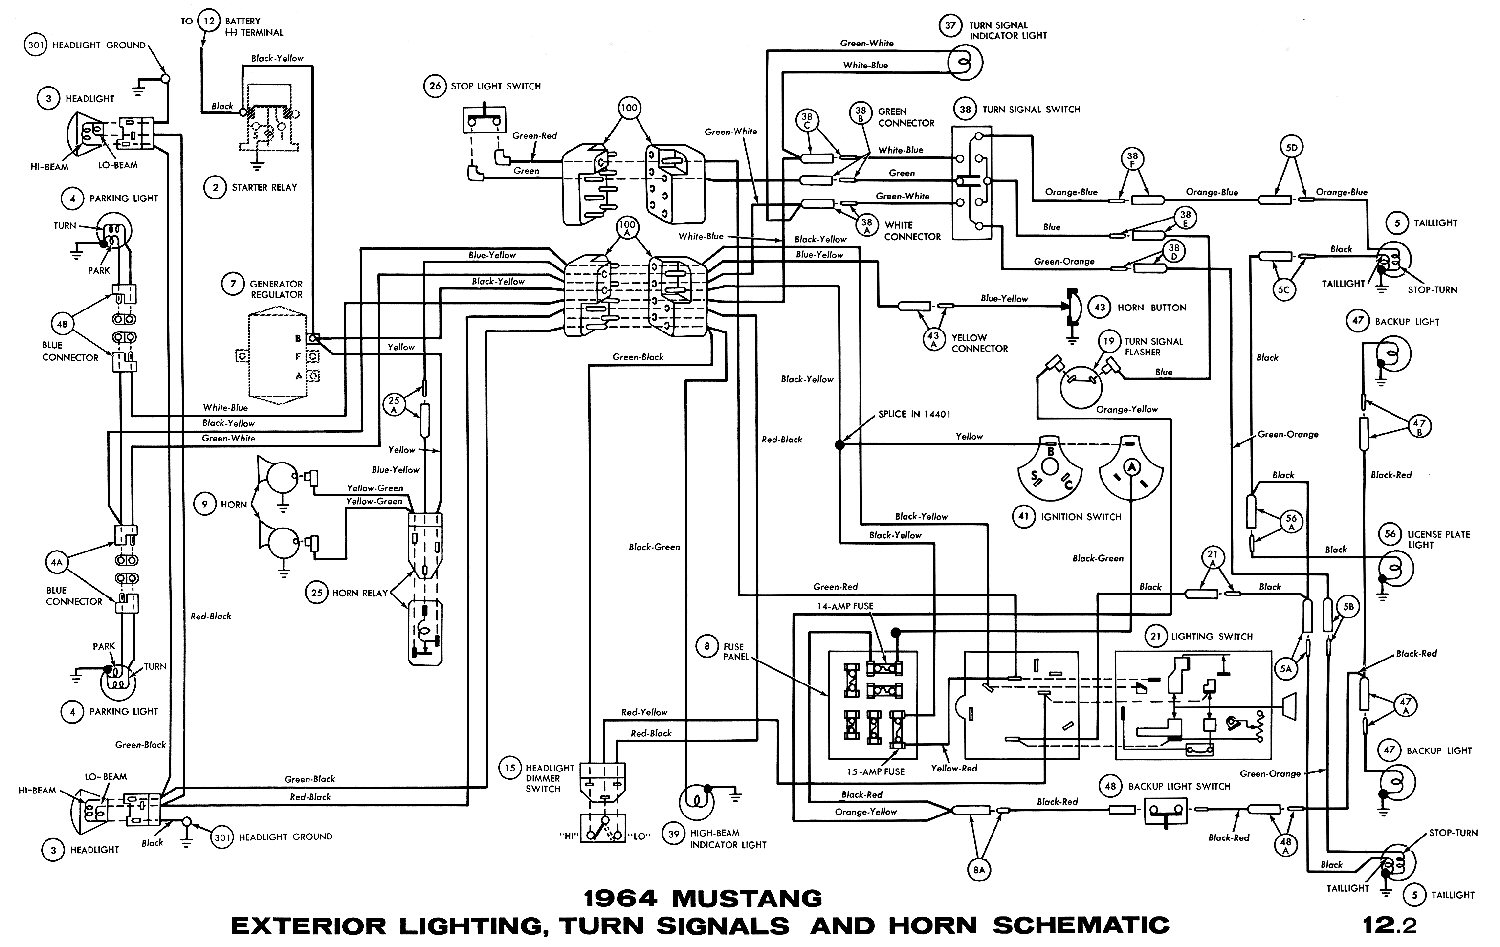 1965 Ford Thunderbird Wiring Diagram Libraries 1967 Ltd 64 Et Schema Online1965 F100 On Headlight